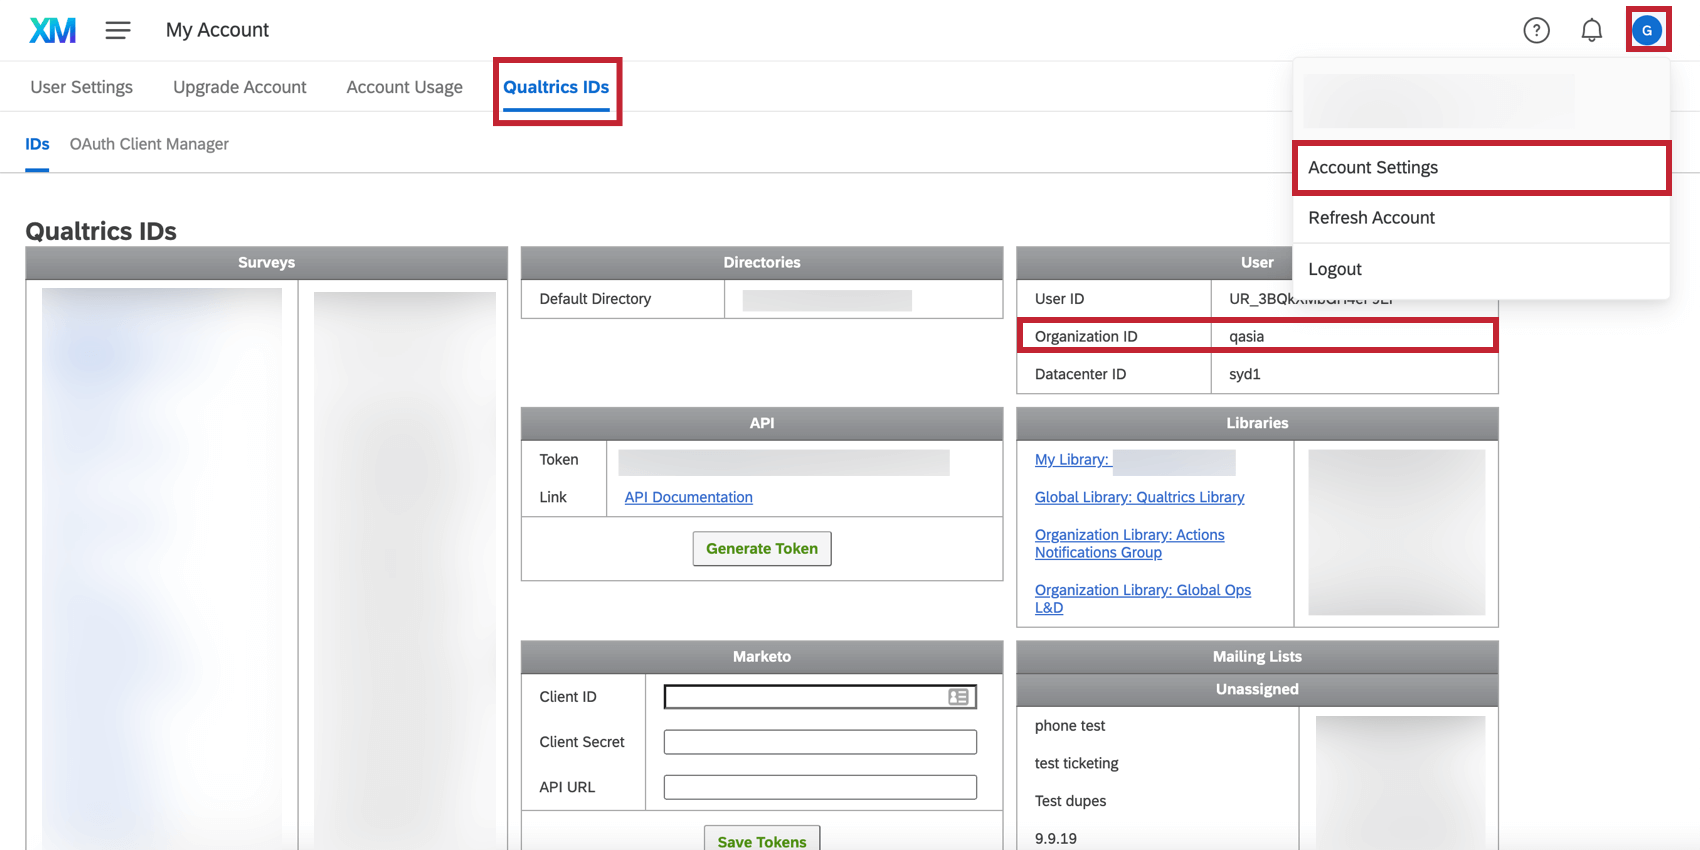 Locating the organization ID from the Account Settings